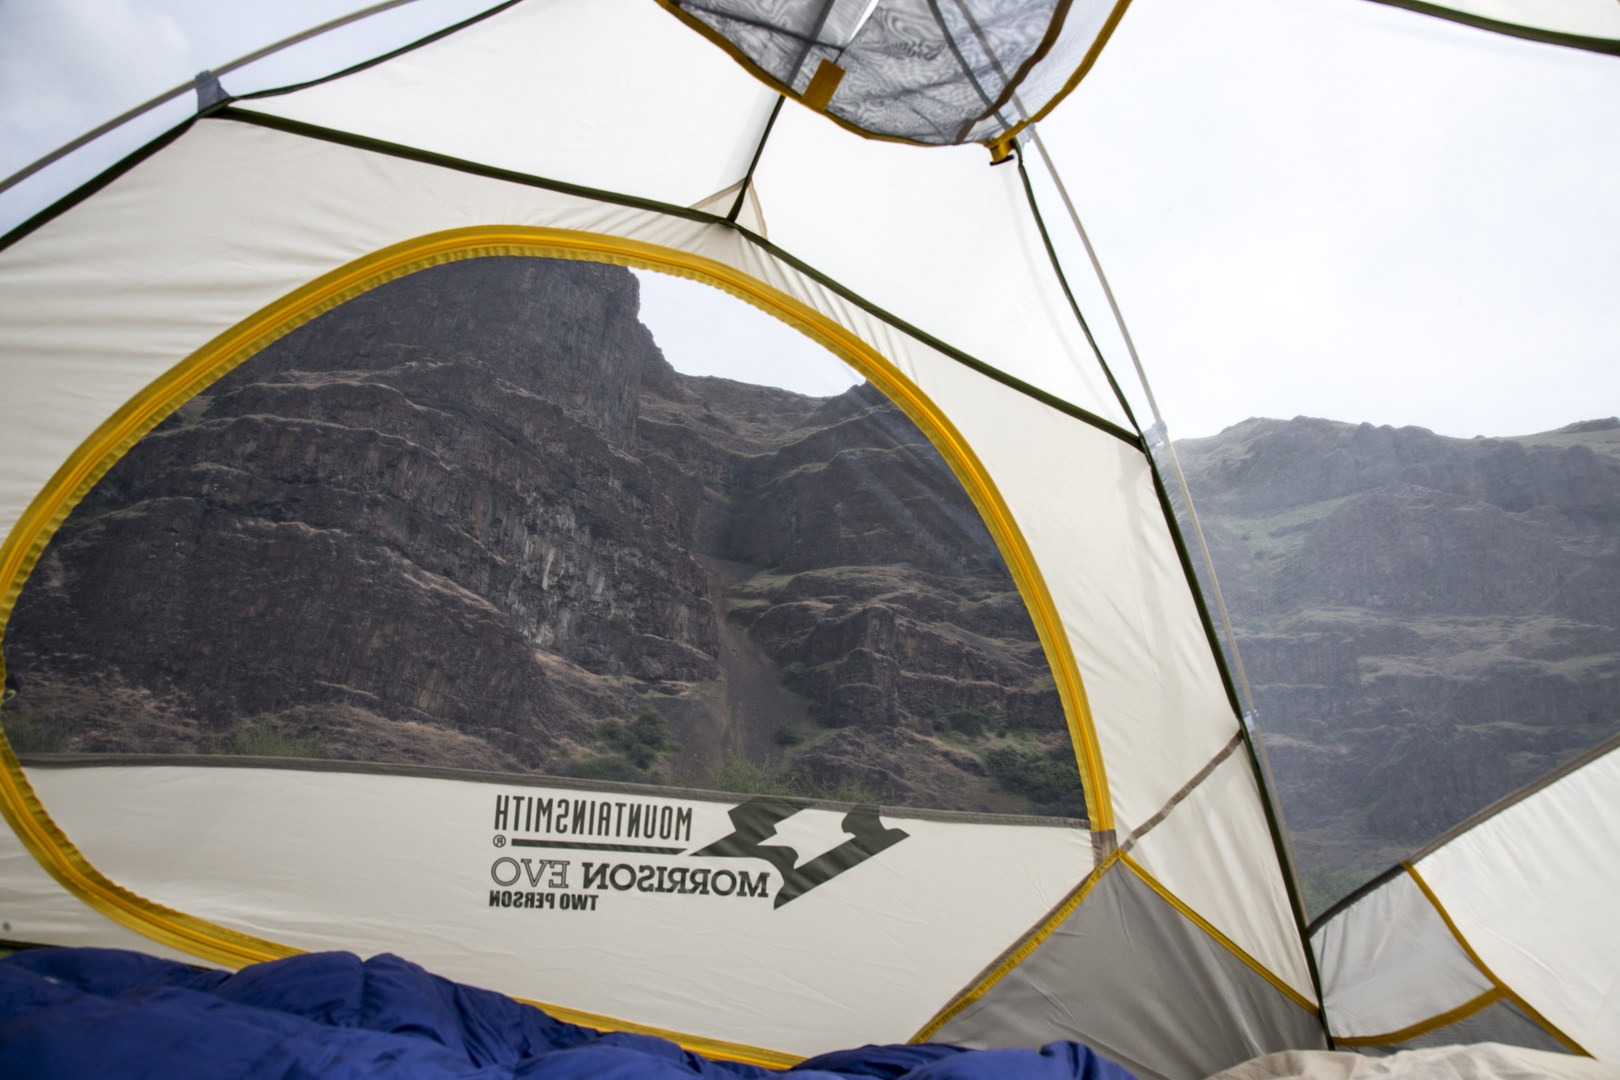 ... 68d mesh and 185t breathable polyester make for durable tent walls.- Mountainsmith Morrison Evo ... & Mountainsmith Morrison Evo 2 - Outdoor Project